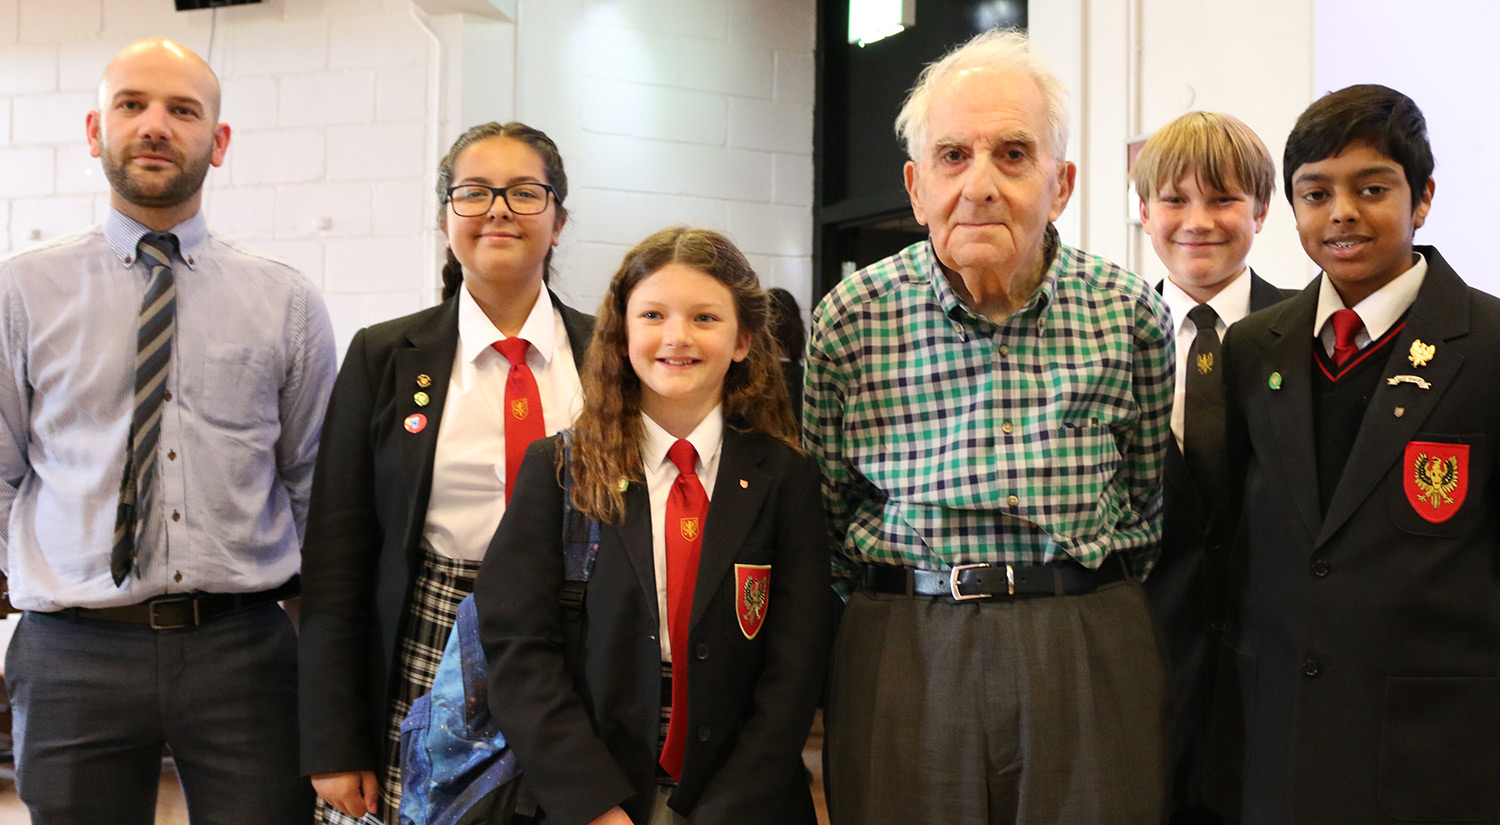 Holocaust survivor Frank Bright with students from The Gilberd School